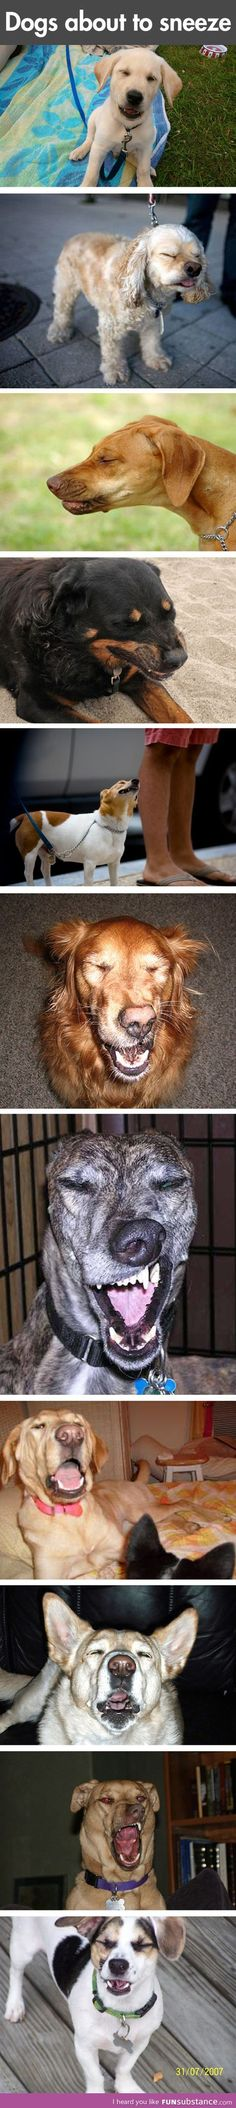 Dogs about to sneeze...